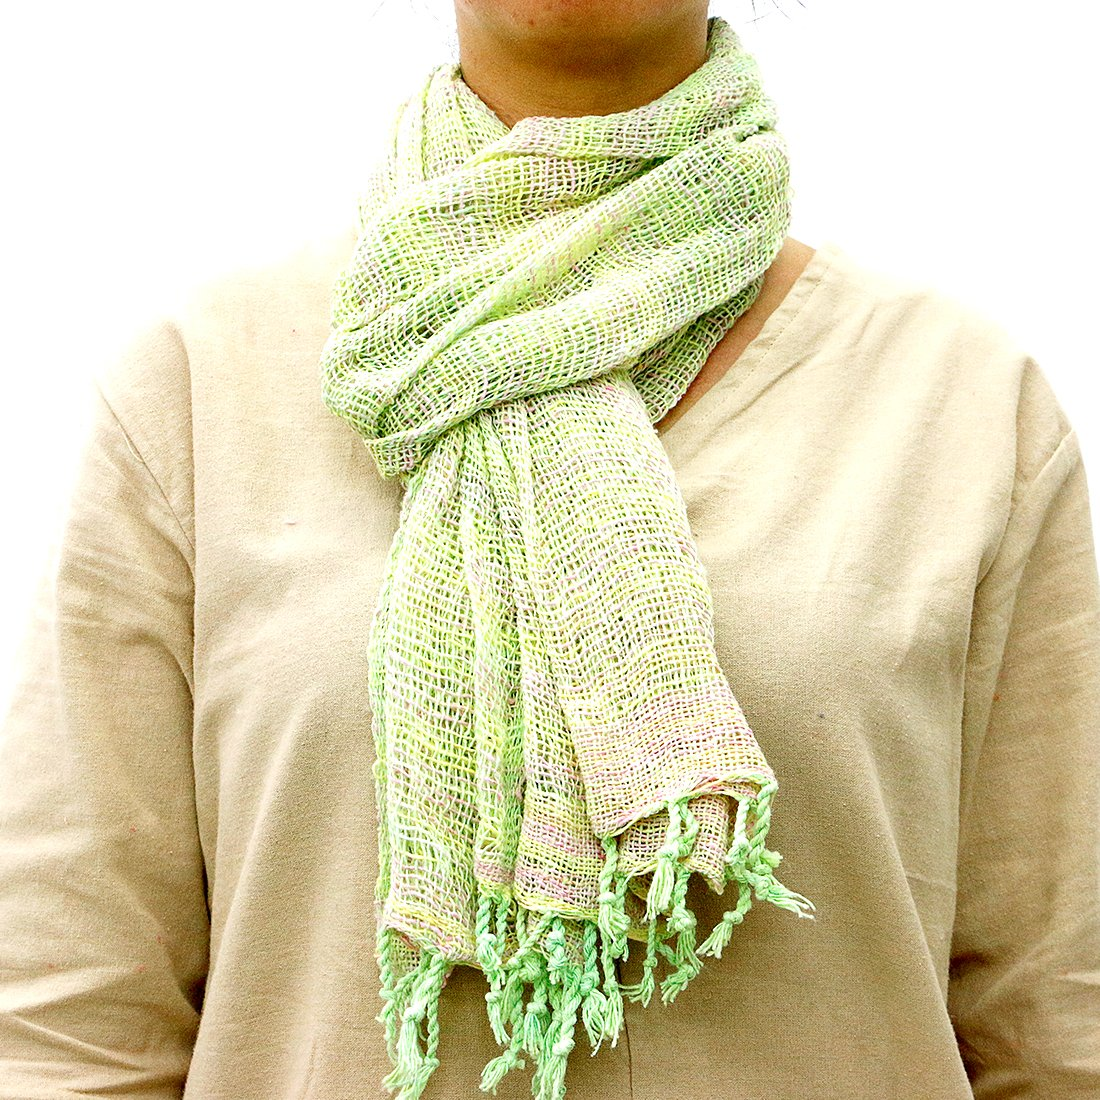 Taruron Woven Net Cotton Plain or Multi Colors Summer fashionable Scarf (Green)